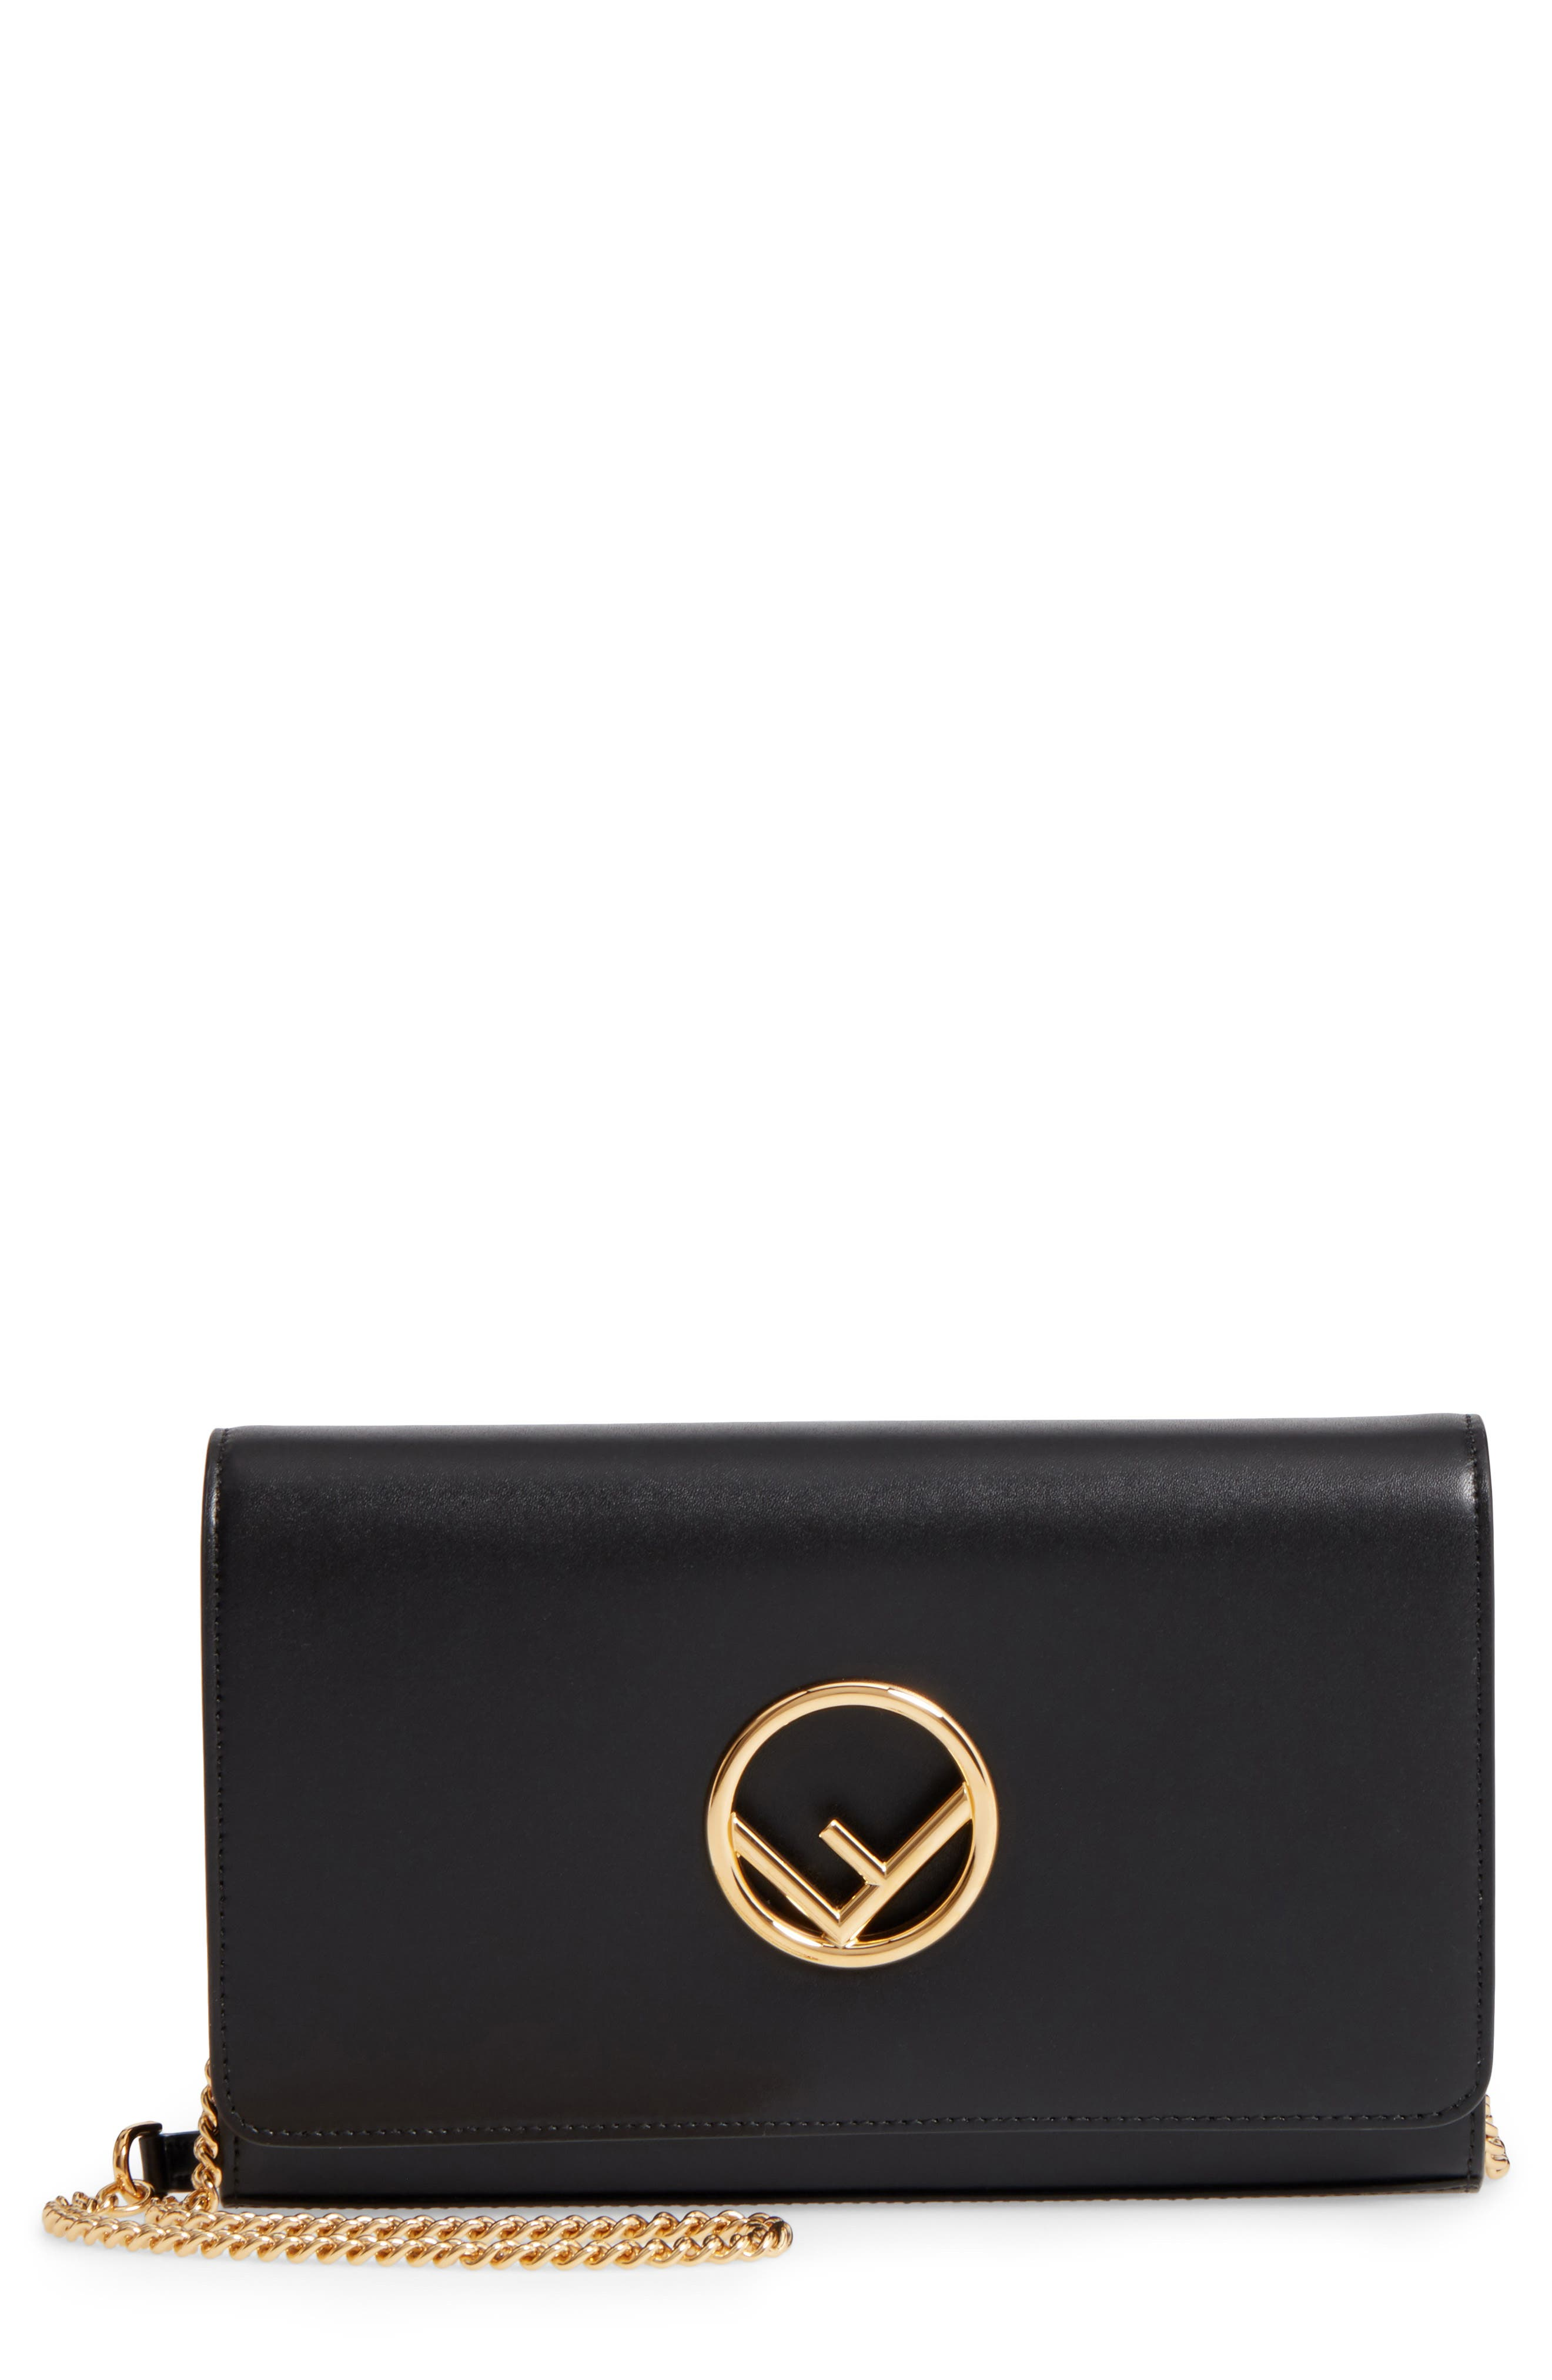 FENDI, Liberty Logo Calfskin Leather Wallet on a Chain, Main thumbnail 1, color, 006